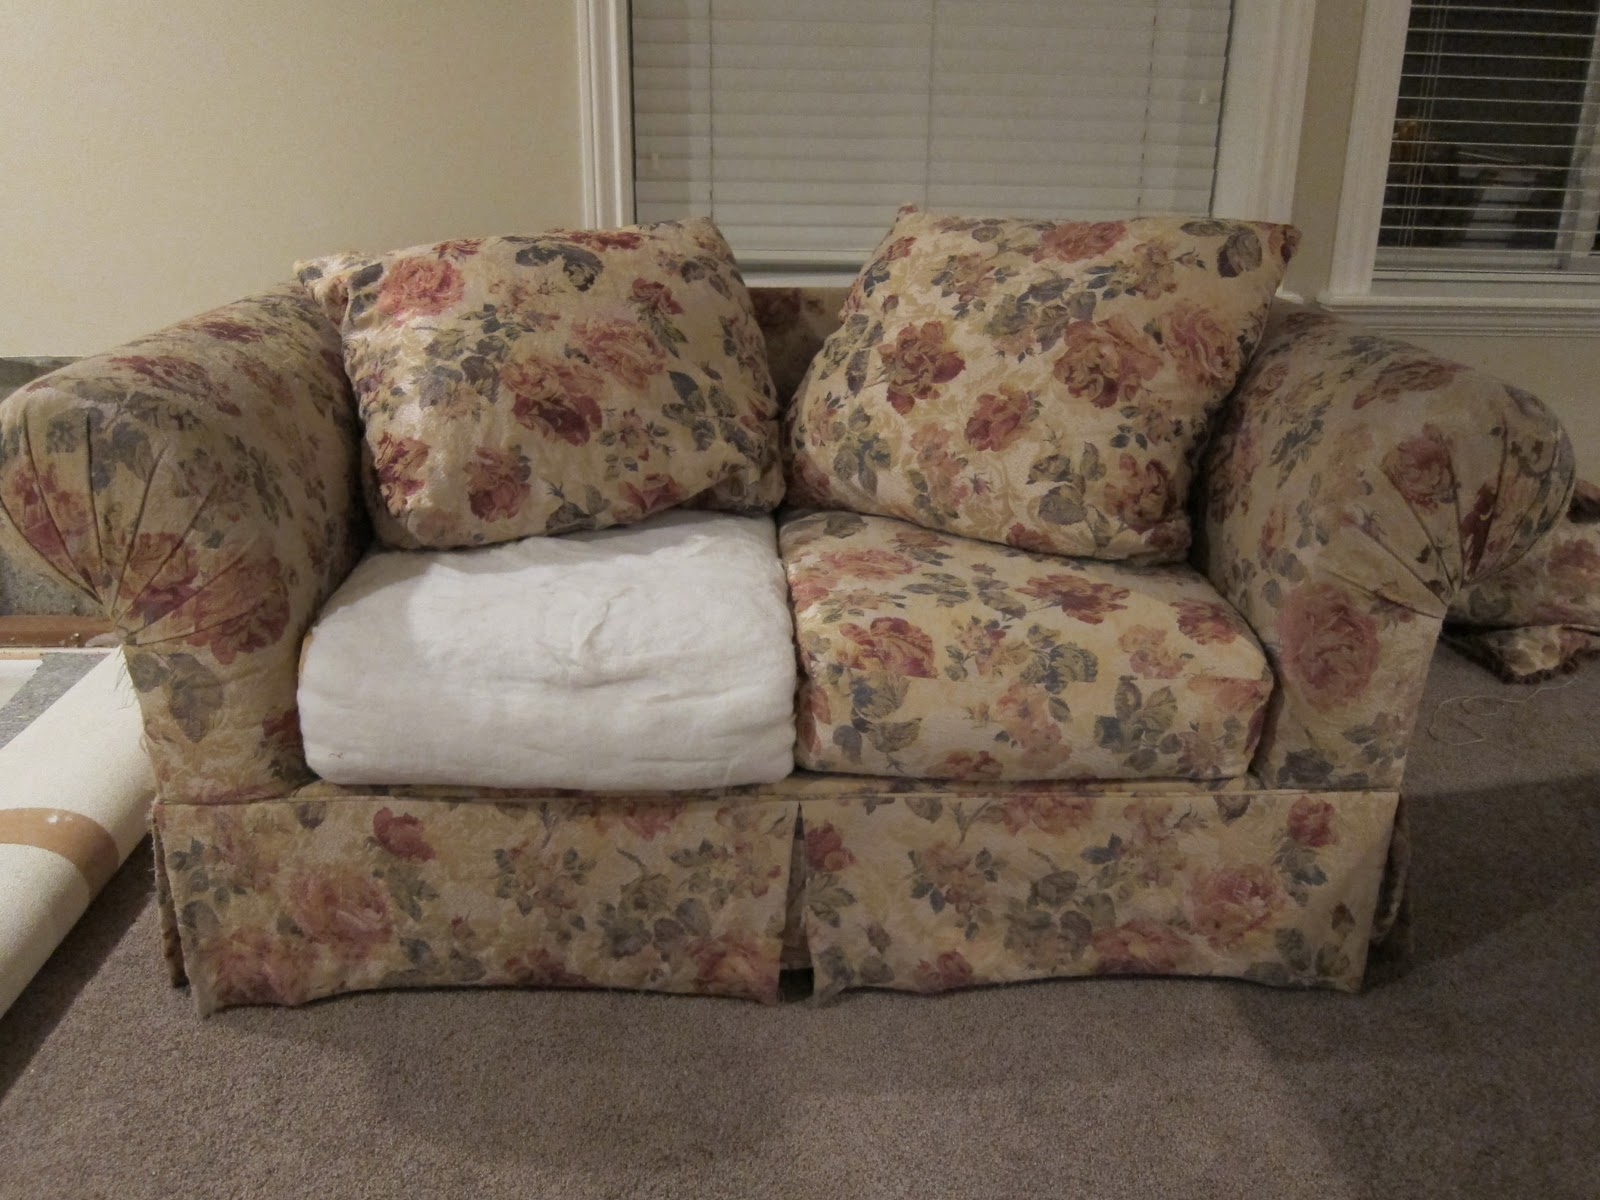 Big Sofa Back Cushions Do It Yourself Divas Diy Strip Fabric From A Couch And Reupholster It